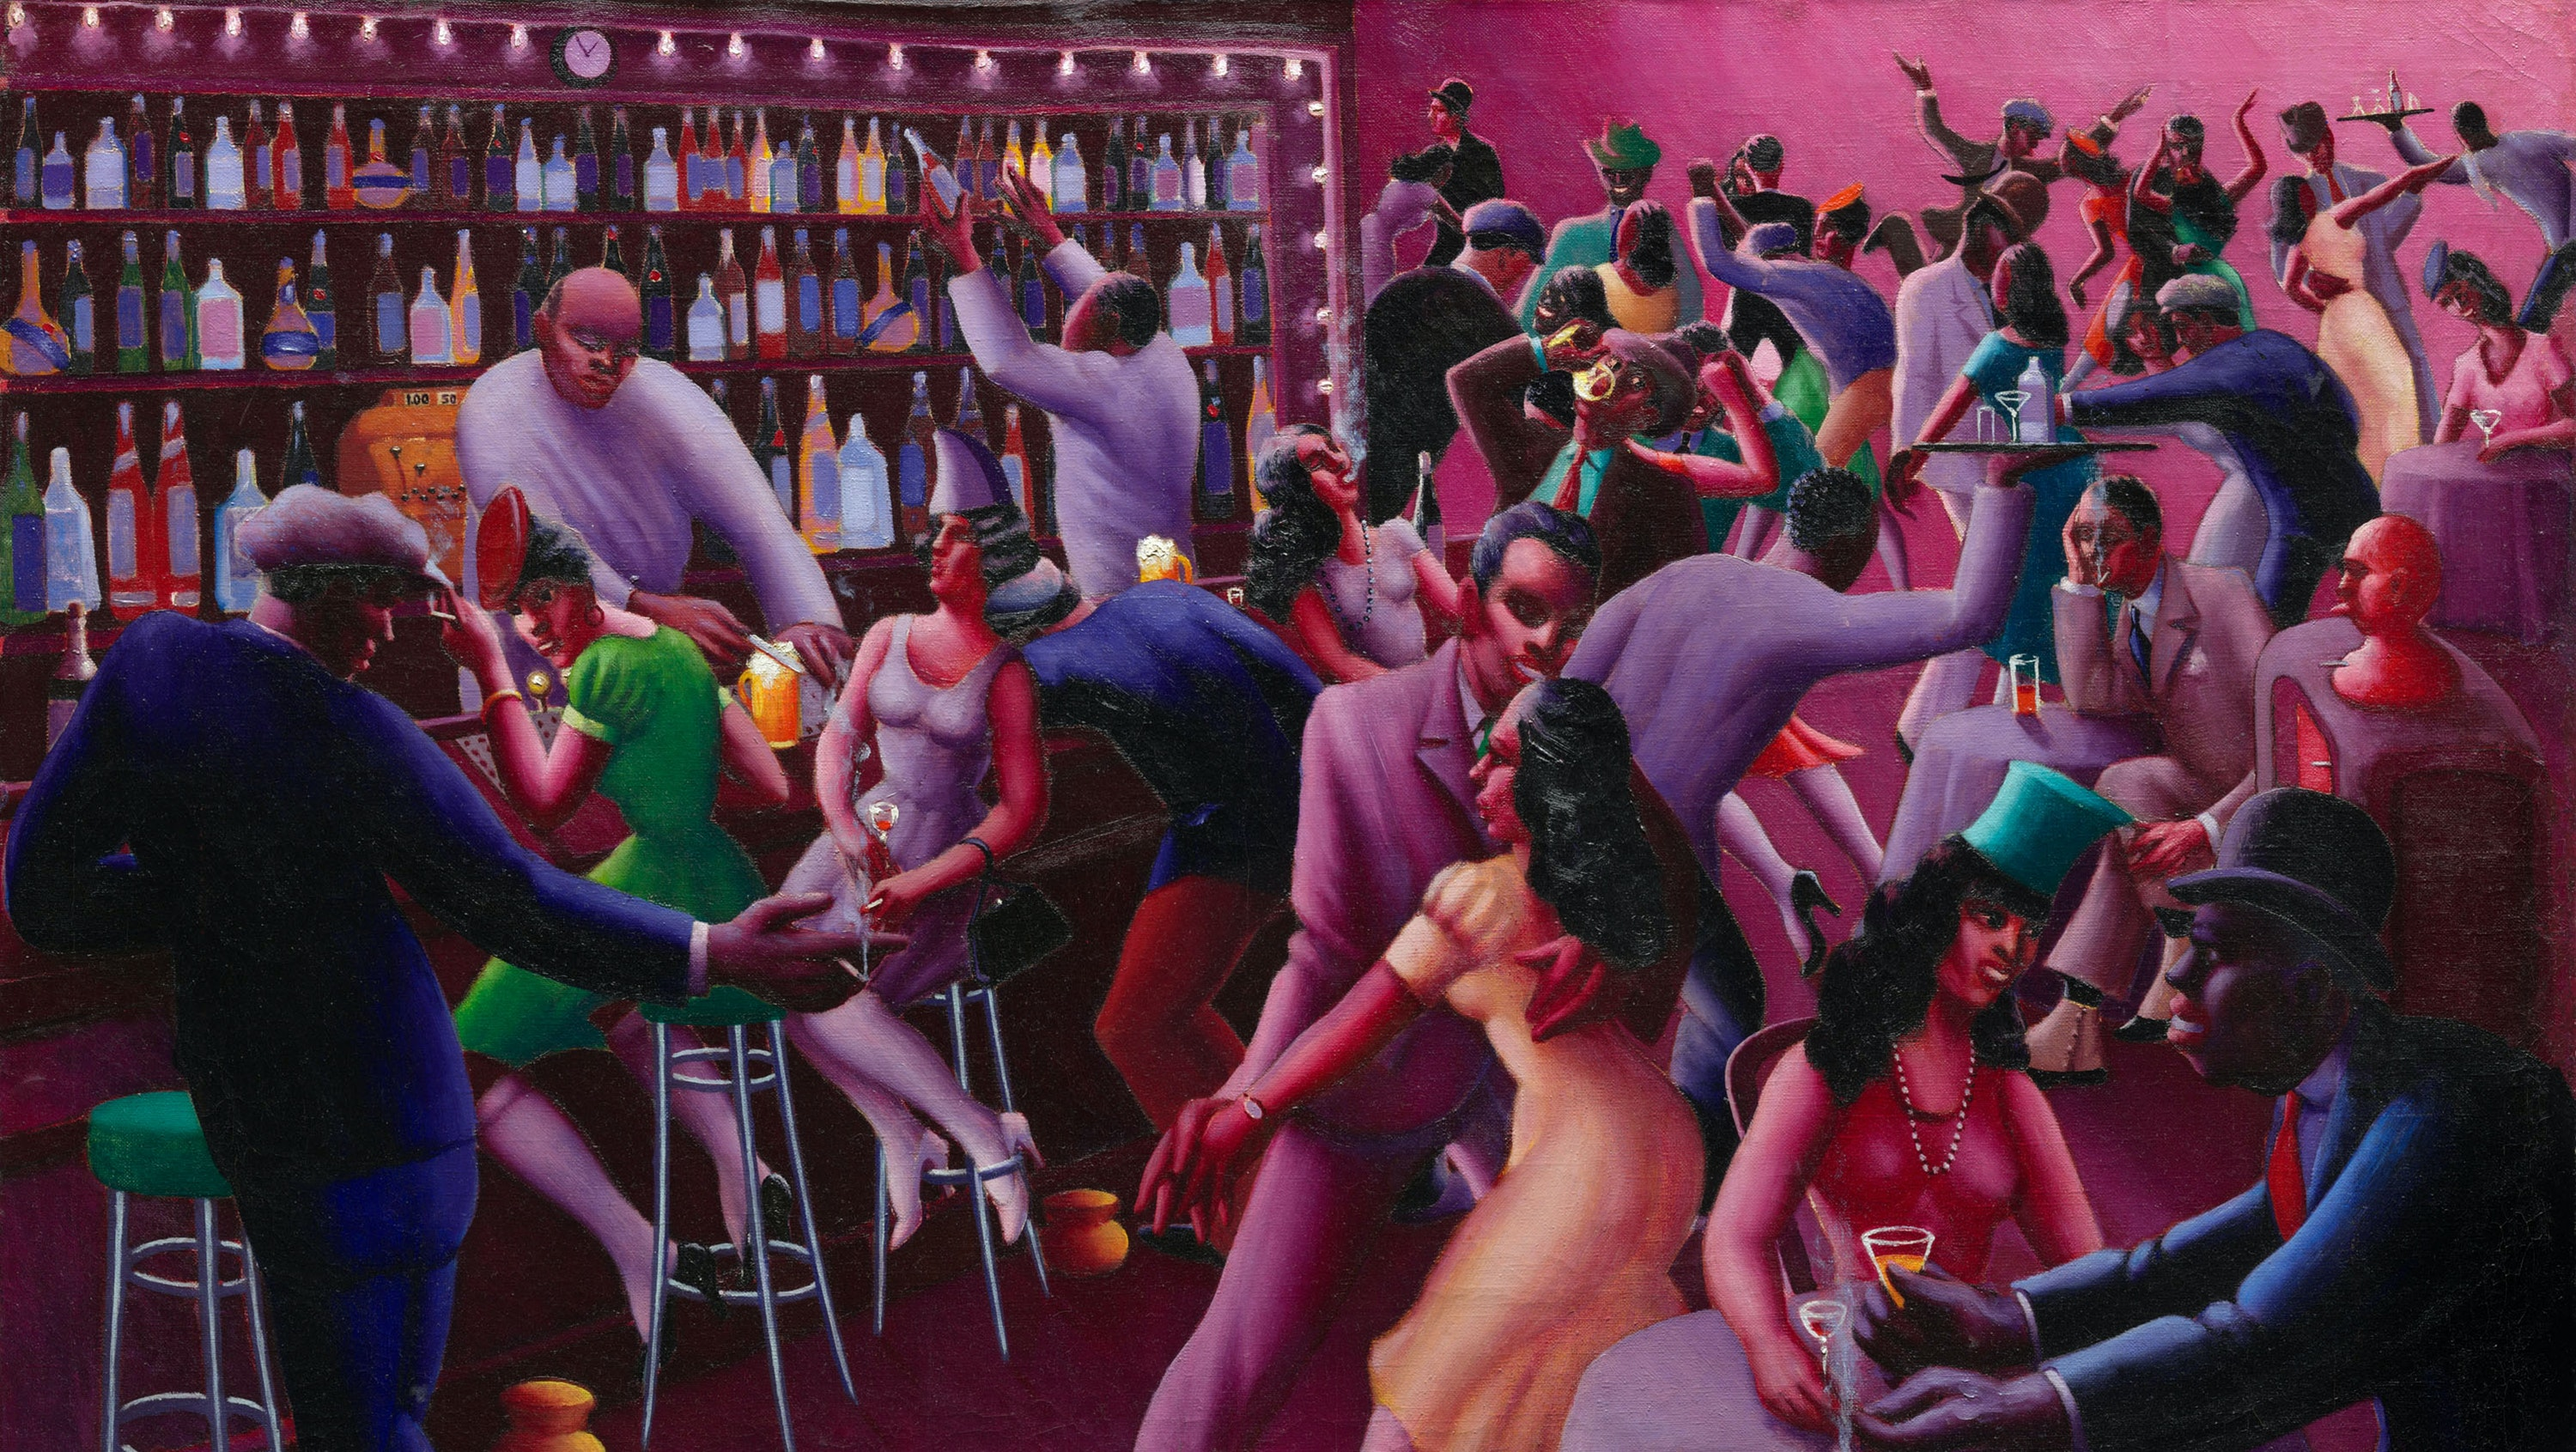 Archibald Motley Nightlife